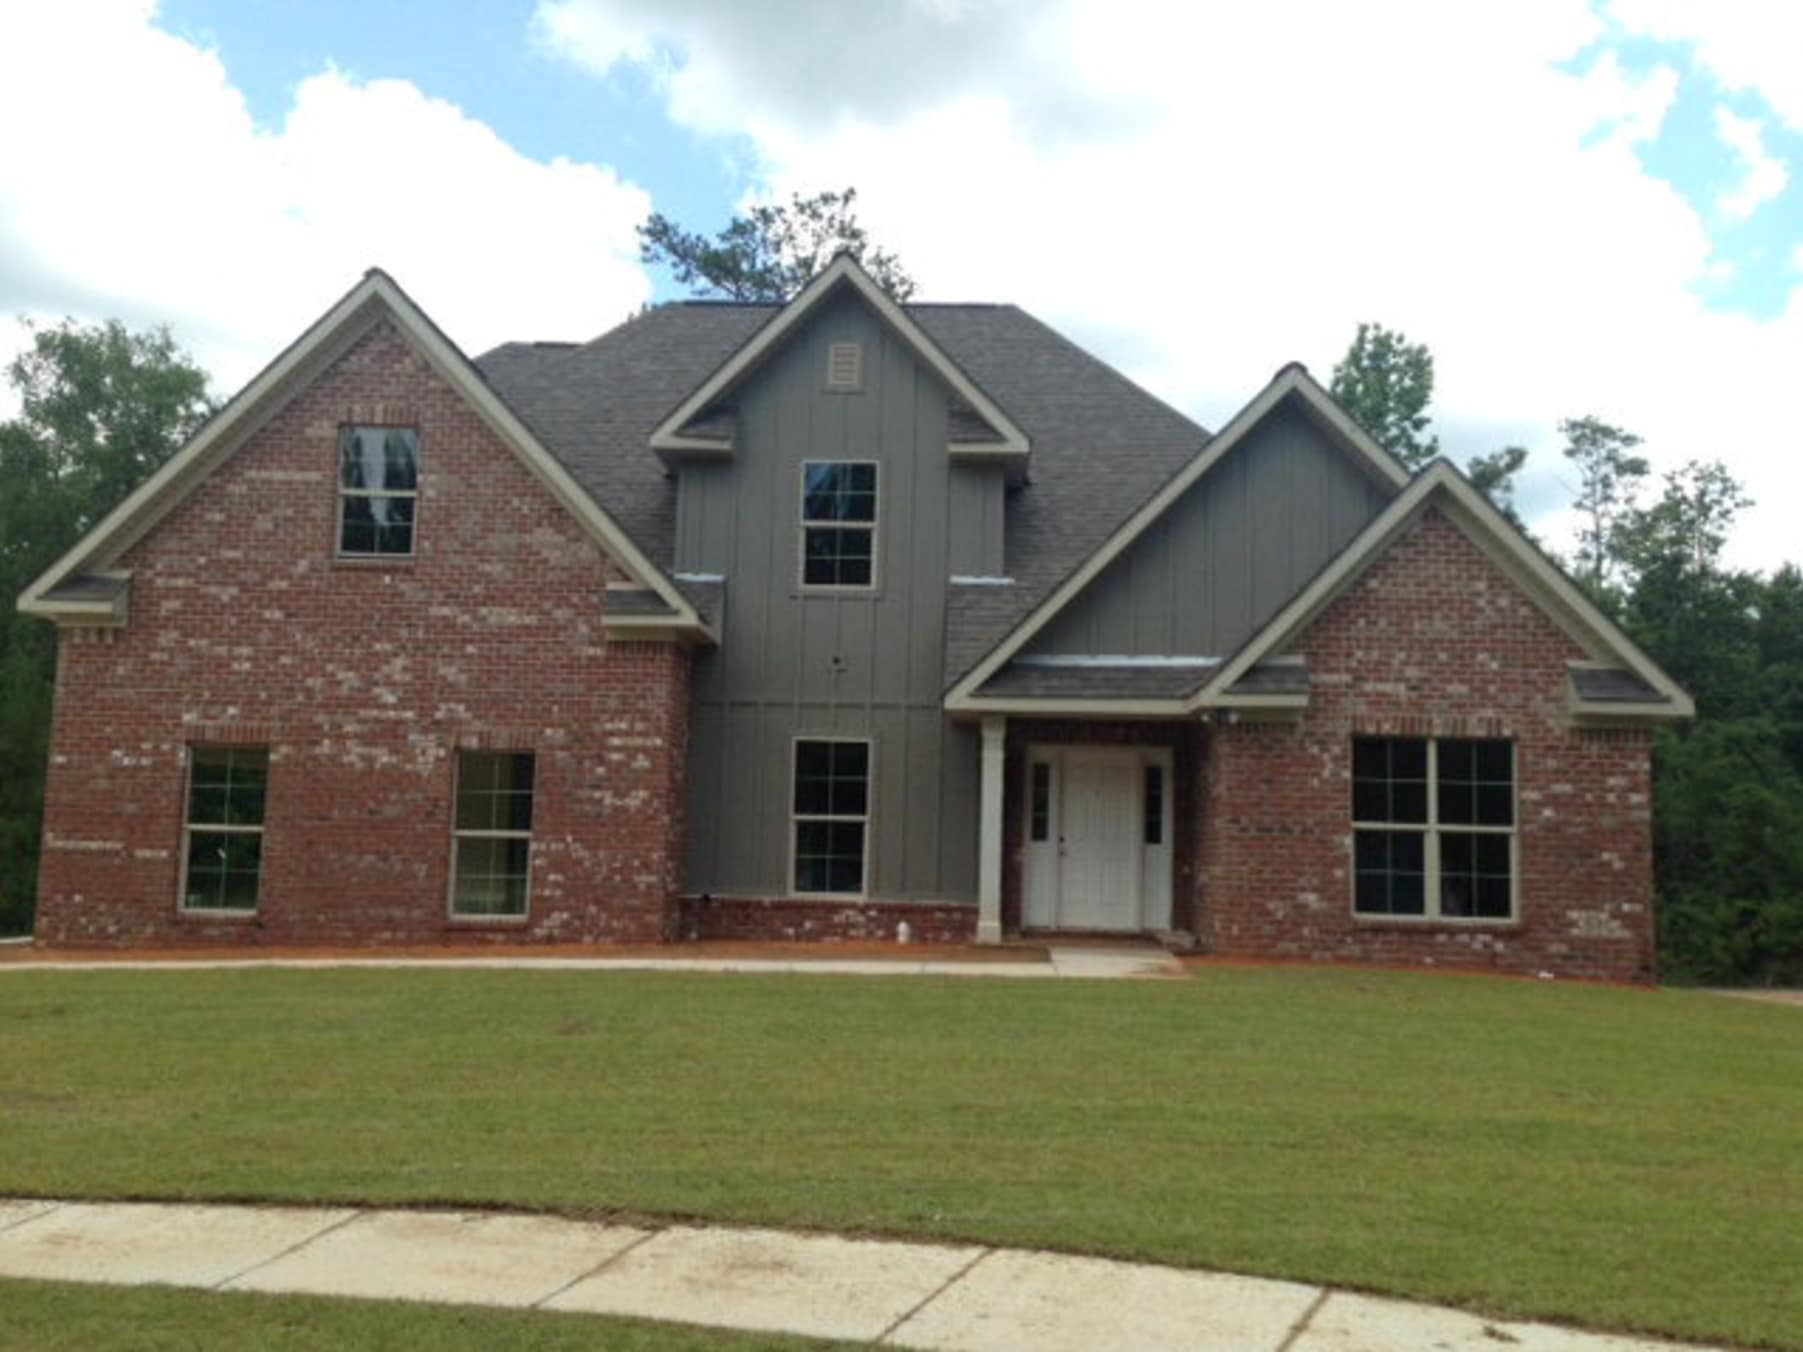 Homes For Sale In Tanager Of Spanish Fort Al